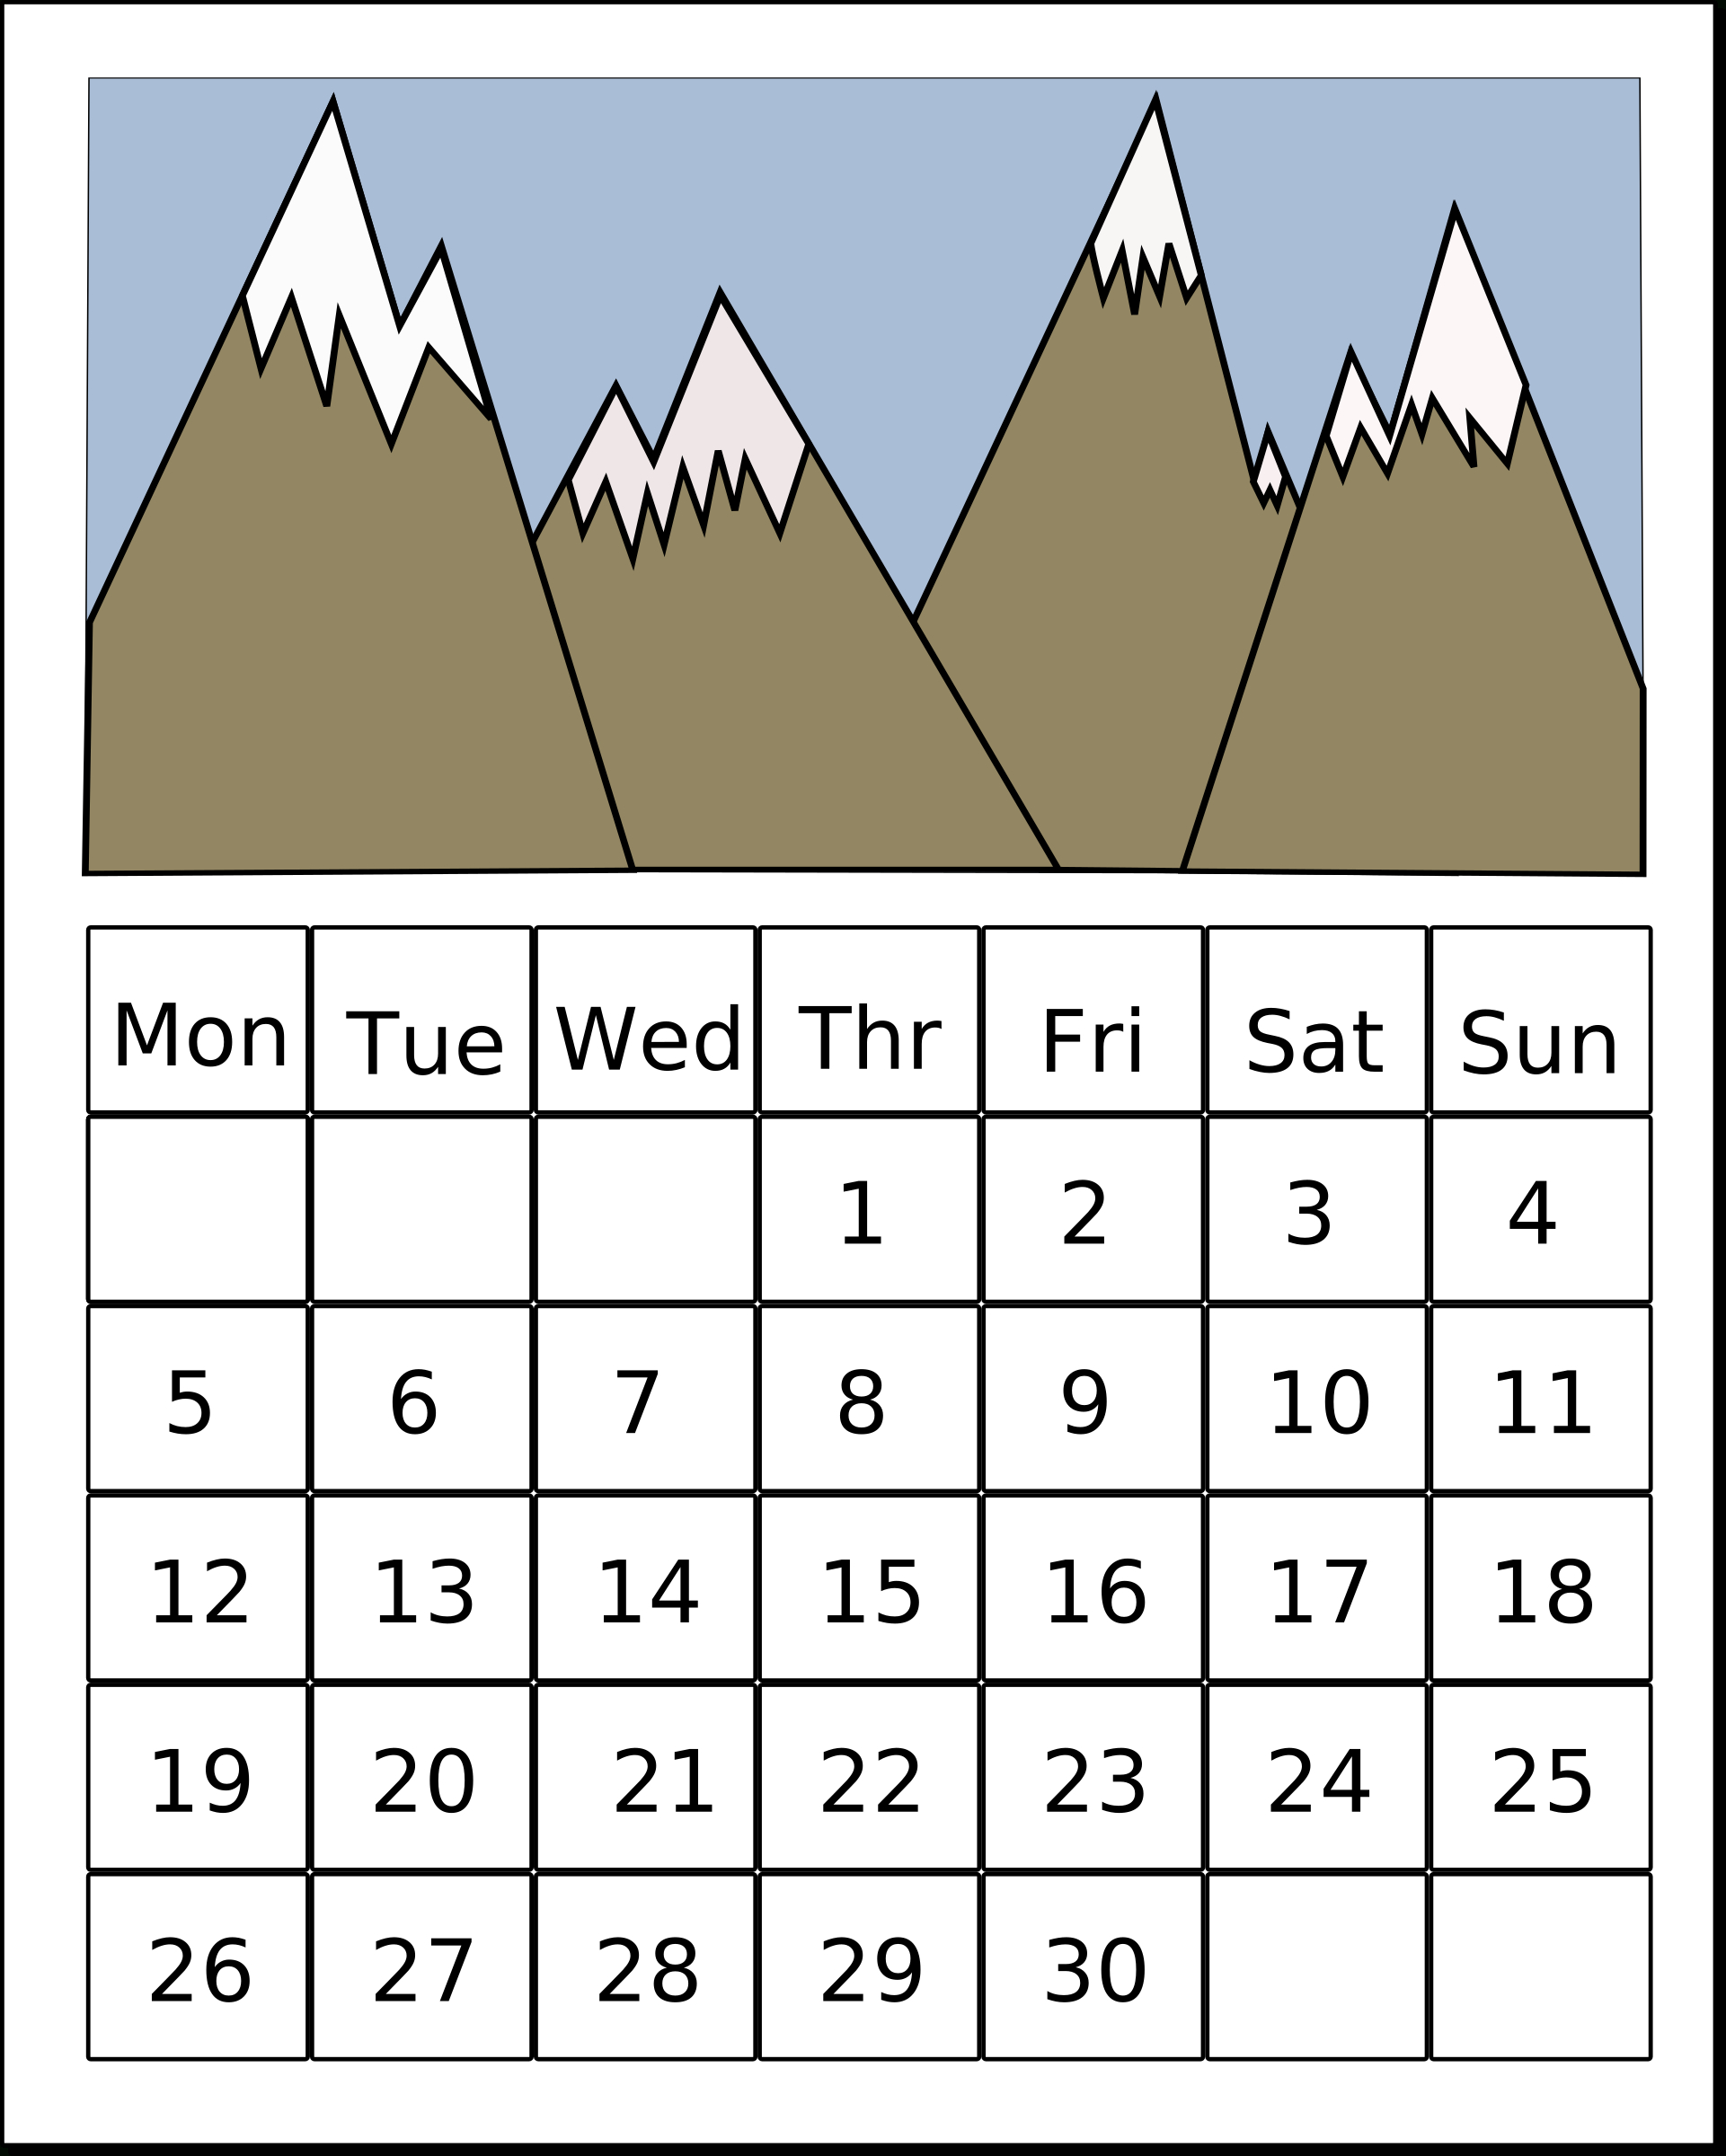 Calendar Of Stem-Related Seasonal Events And Holidays | Nise for National Food Day With Events Calender 2020 Free To Print Up